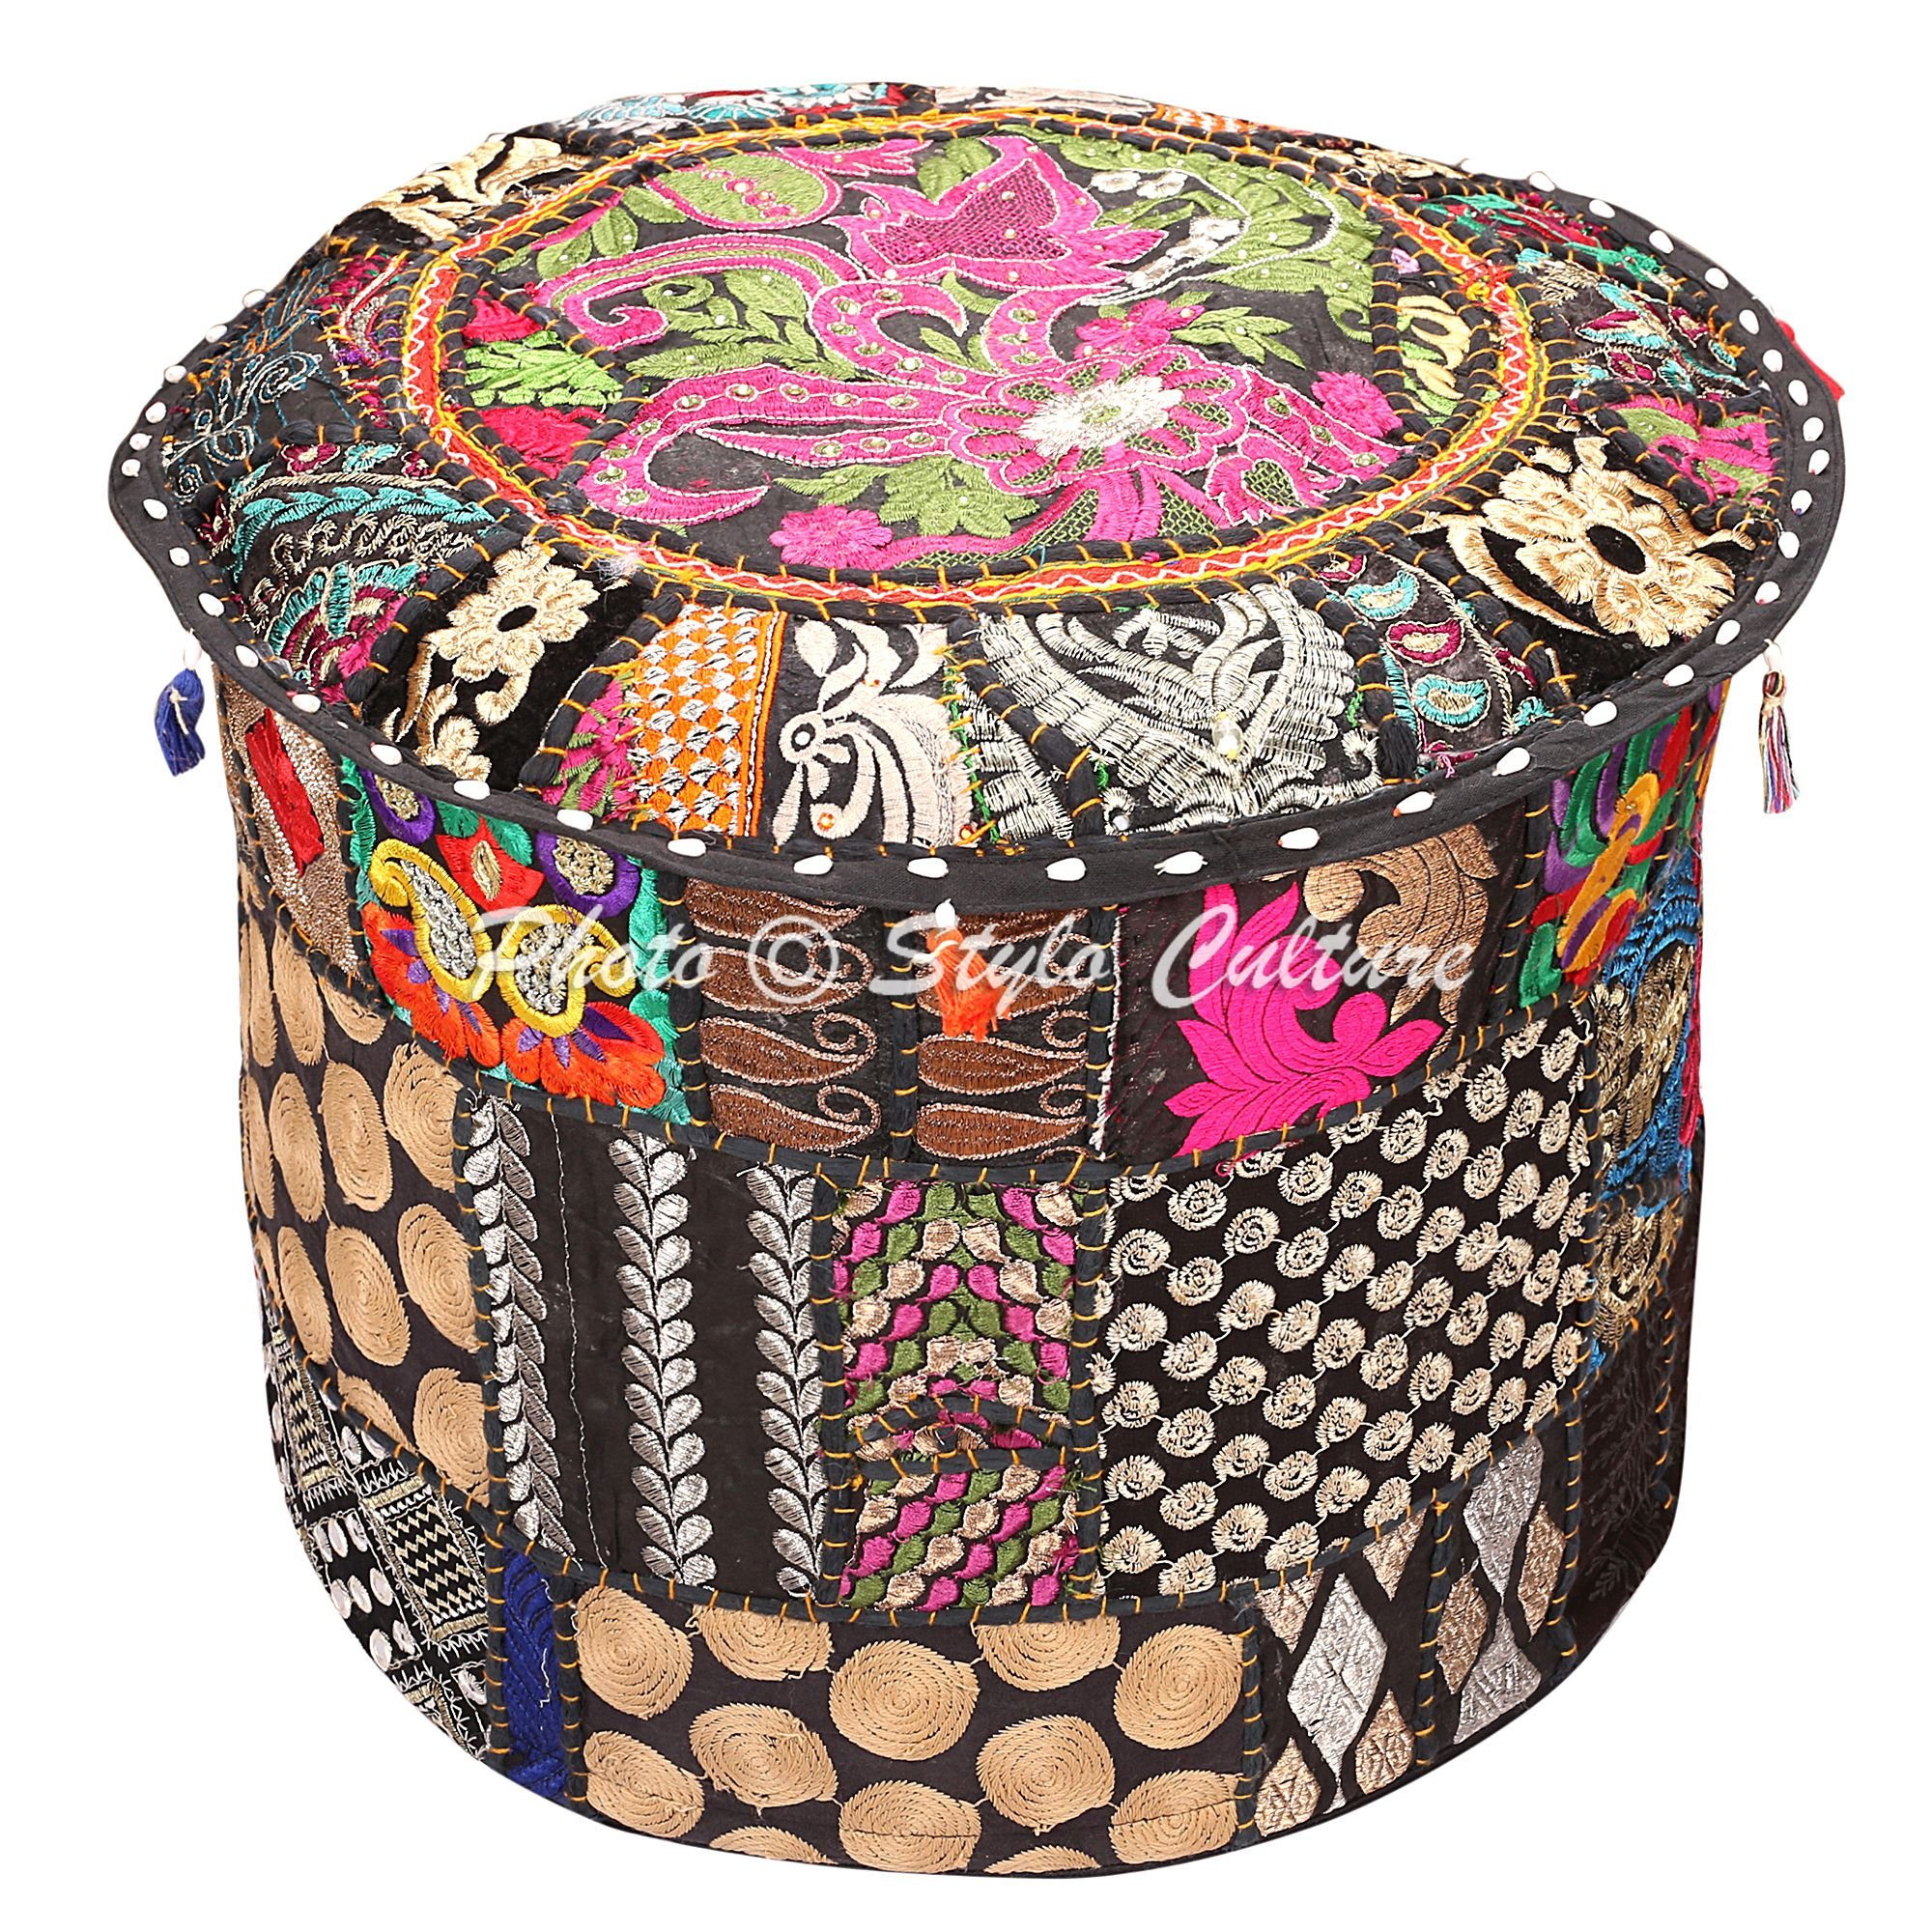 Stylo Culture Indian Floor Ottoman Pouf Cover Round Patchwork Embroidered Pouffe Ottoman Cover Black Cotton Floral Traditional Furniture Footstool Seat Puff Cover (16x16x13)